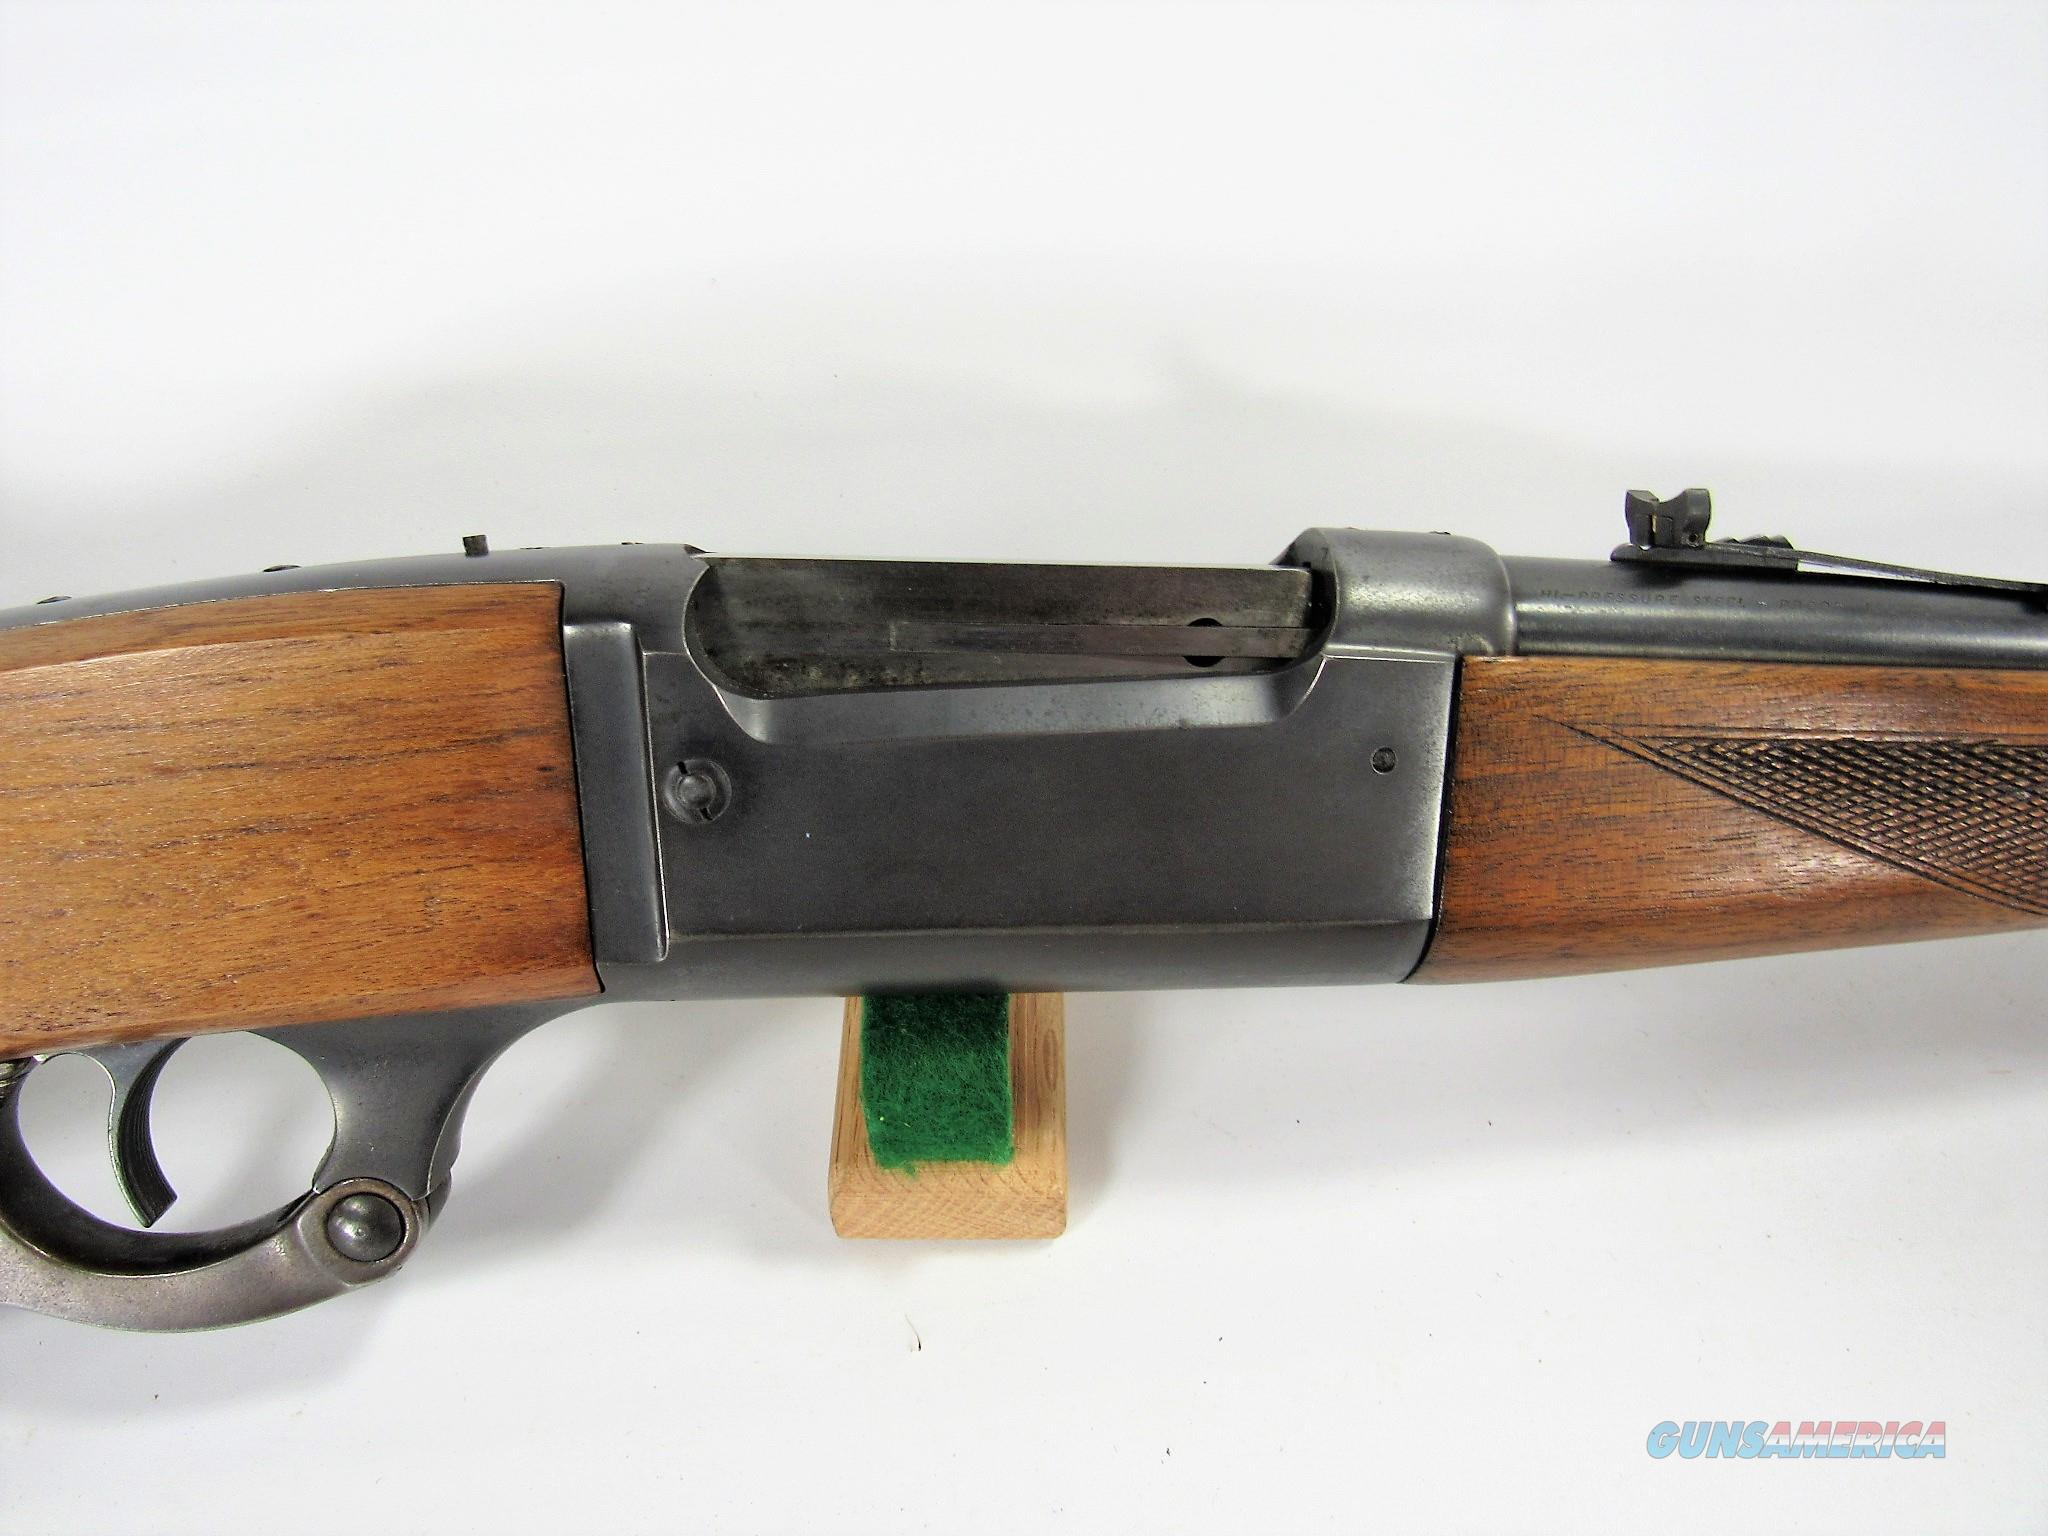 86Y SAVAGE 99 EG 250-3000  Guns > Rifles > Savage Rifles > Model 95/99 Family